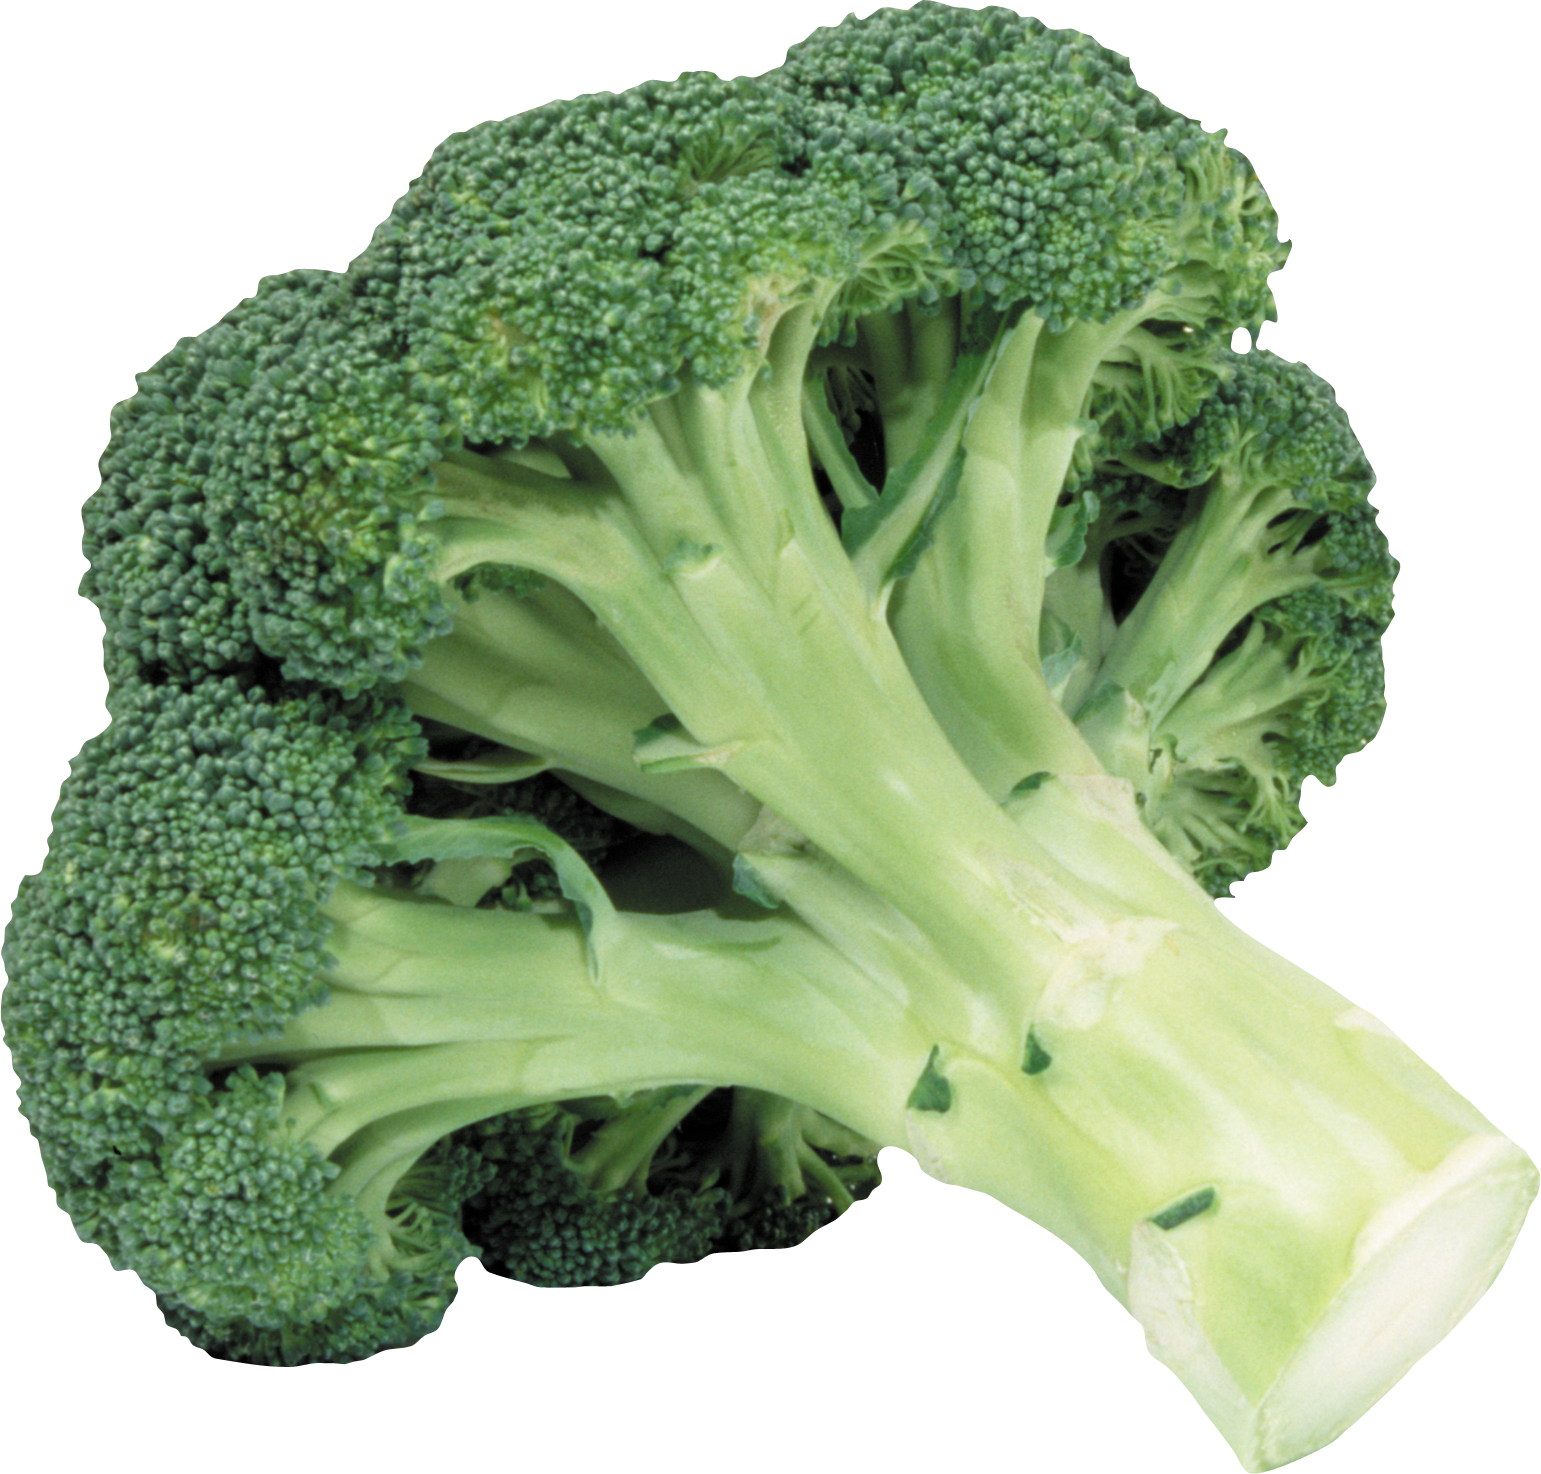 Png image free pictures. Lettuce clipart broccoli